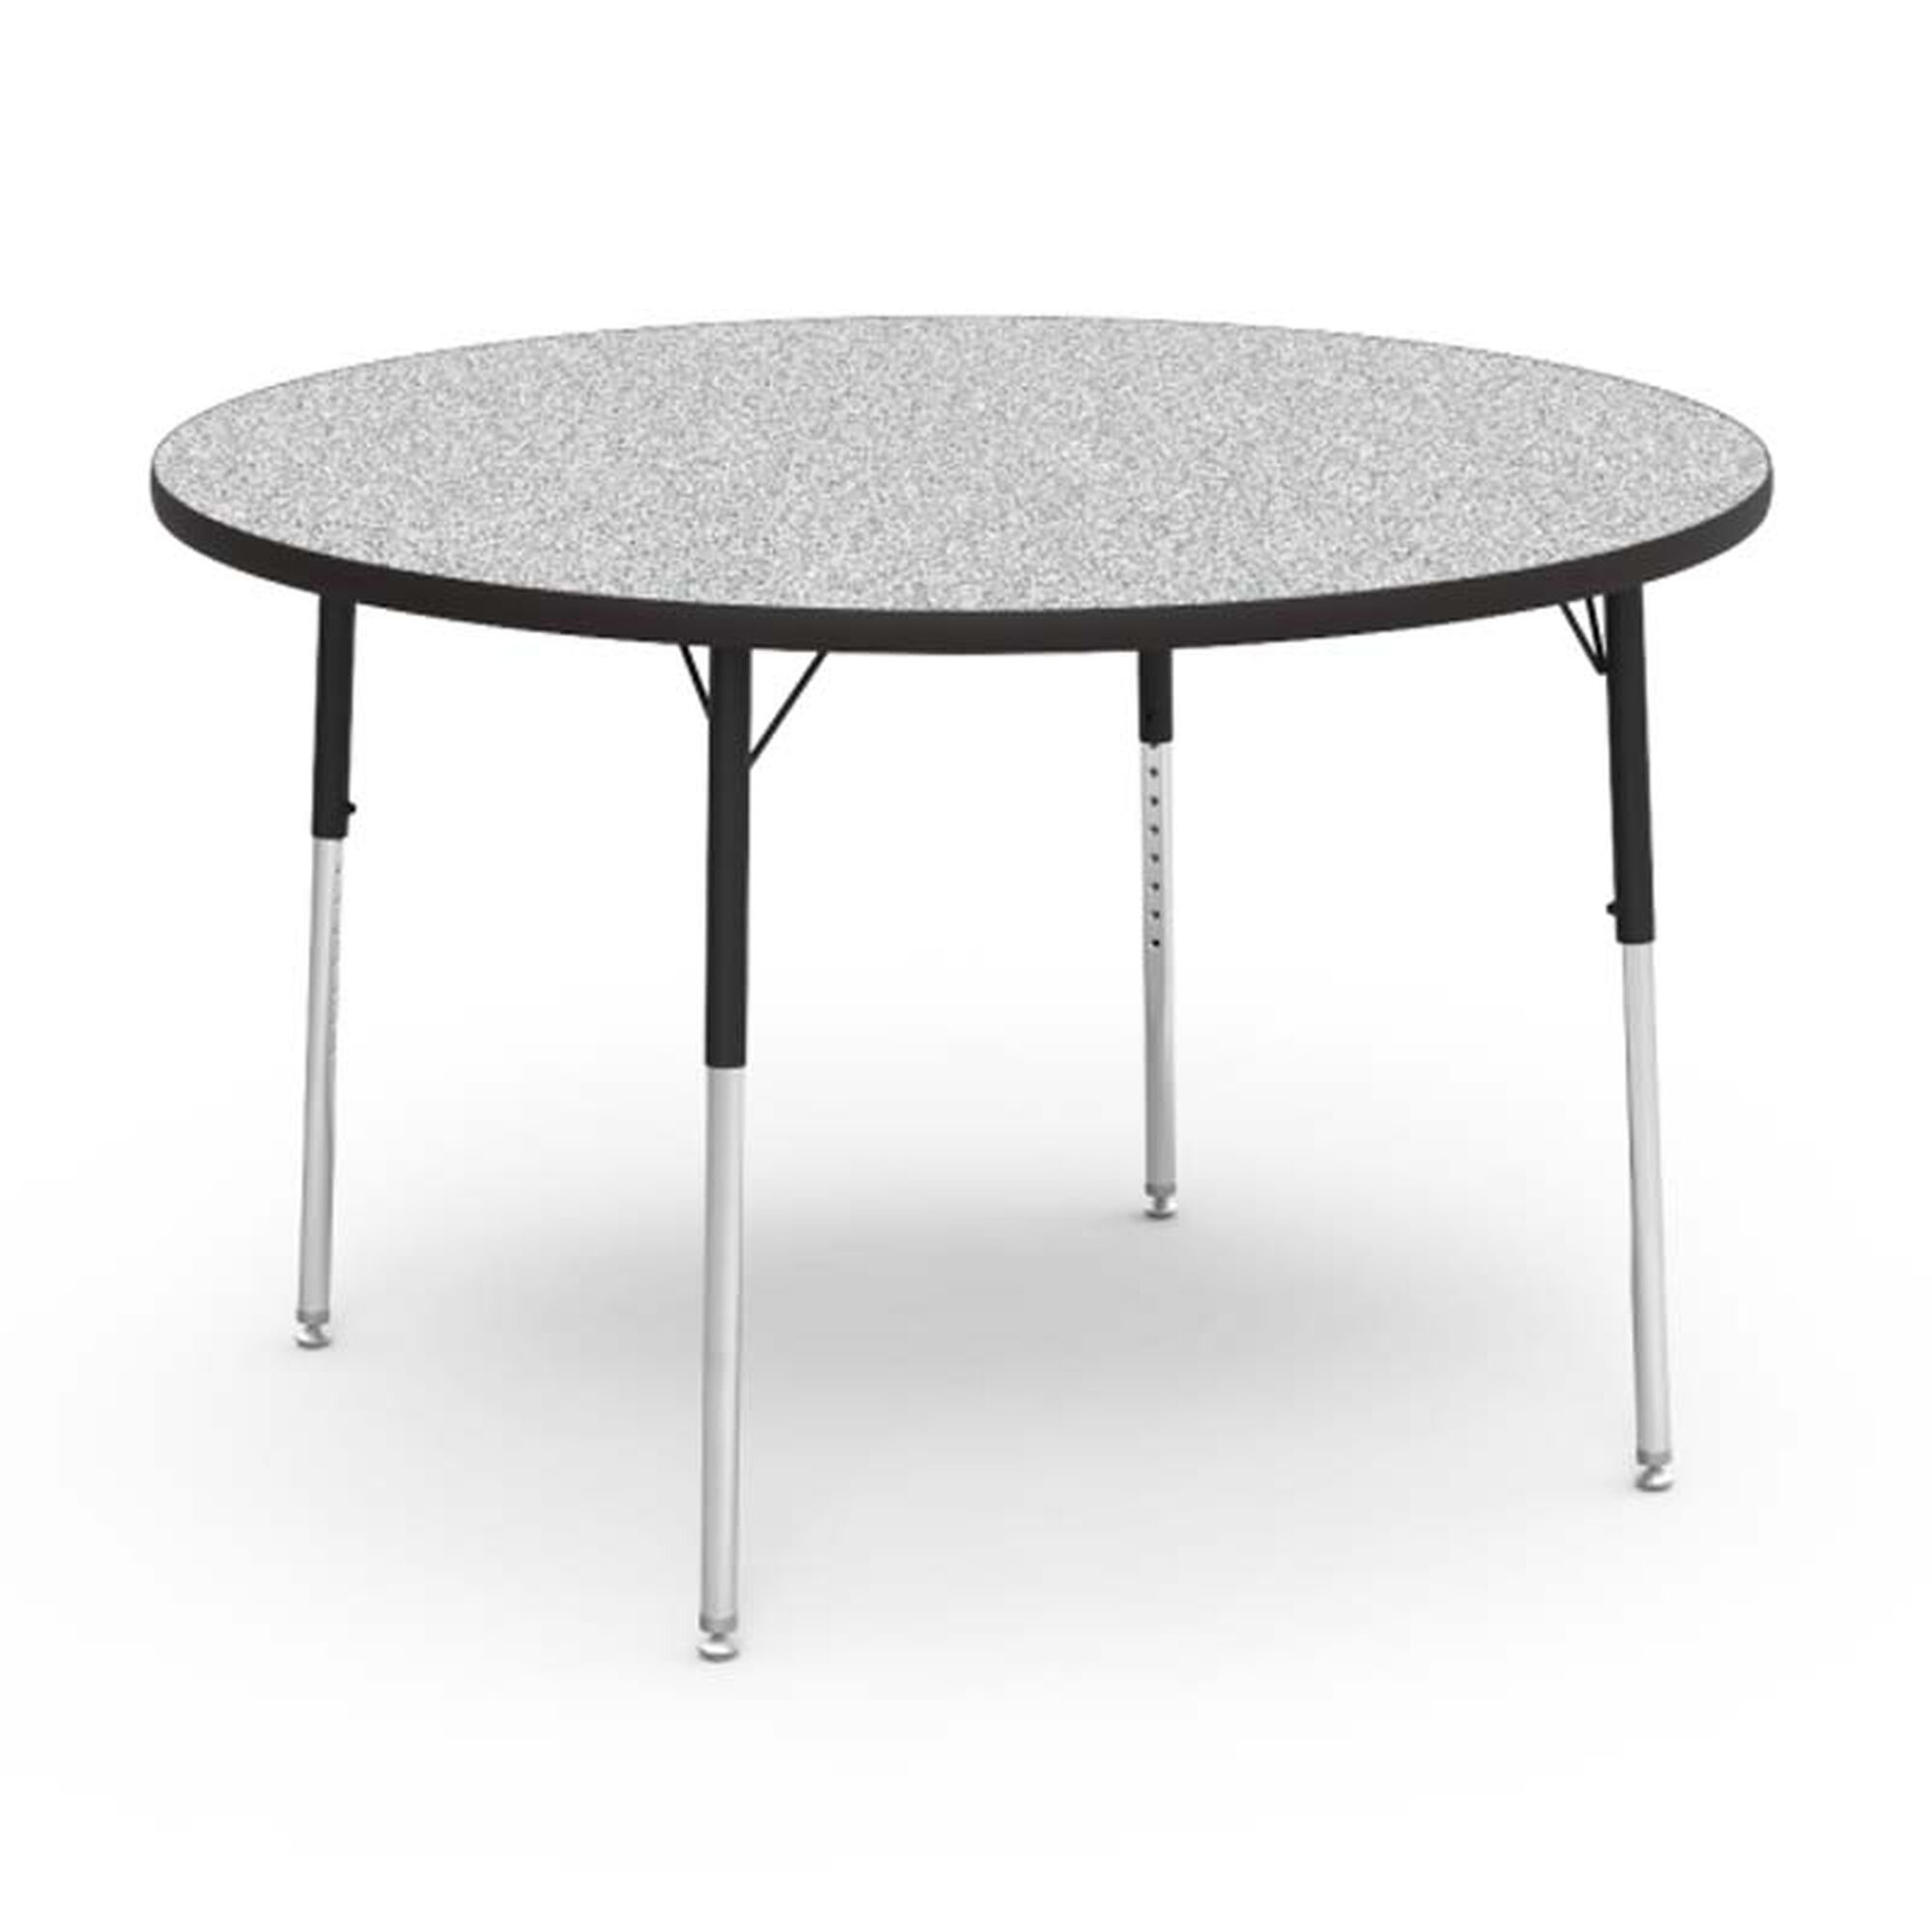 Adjustable Height Round Table.Quick Ship 4000 Series Adjustable Height Round Laminate Activity Table With Gray Nebula Top 48 Diameter X 22 H 30 H